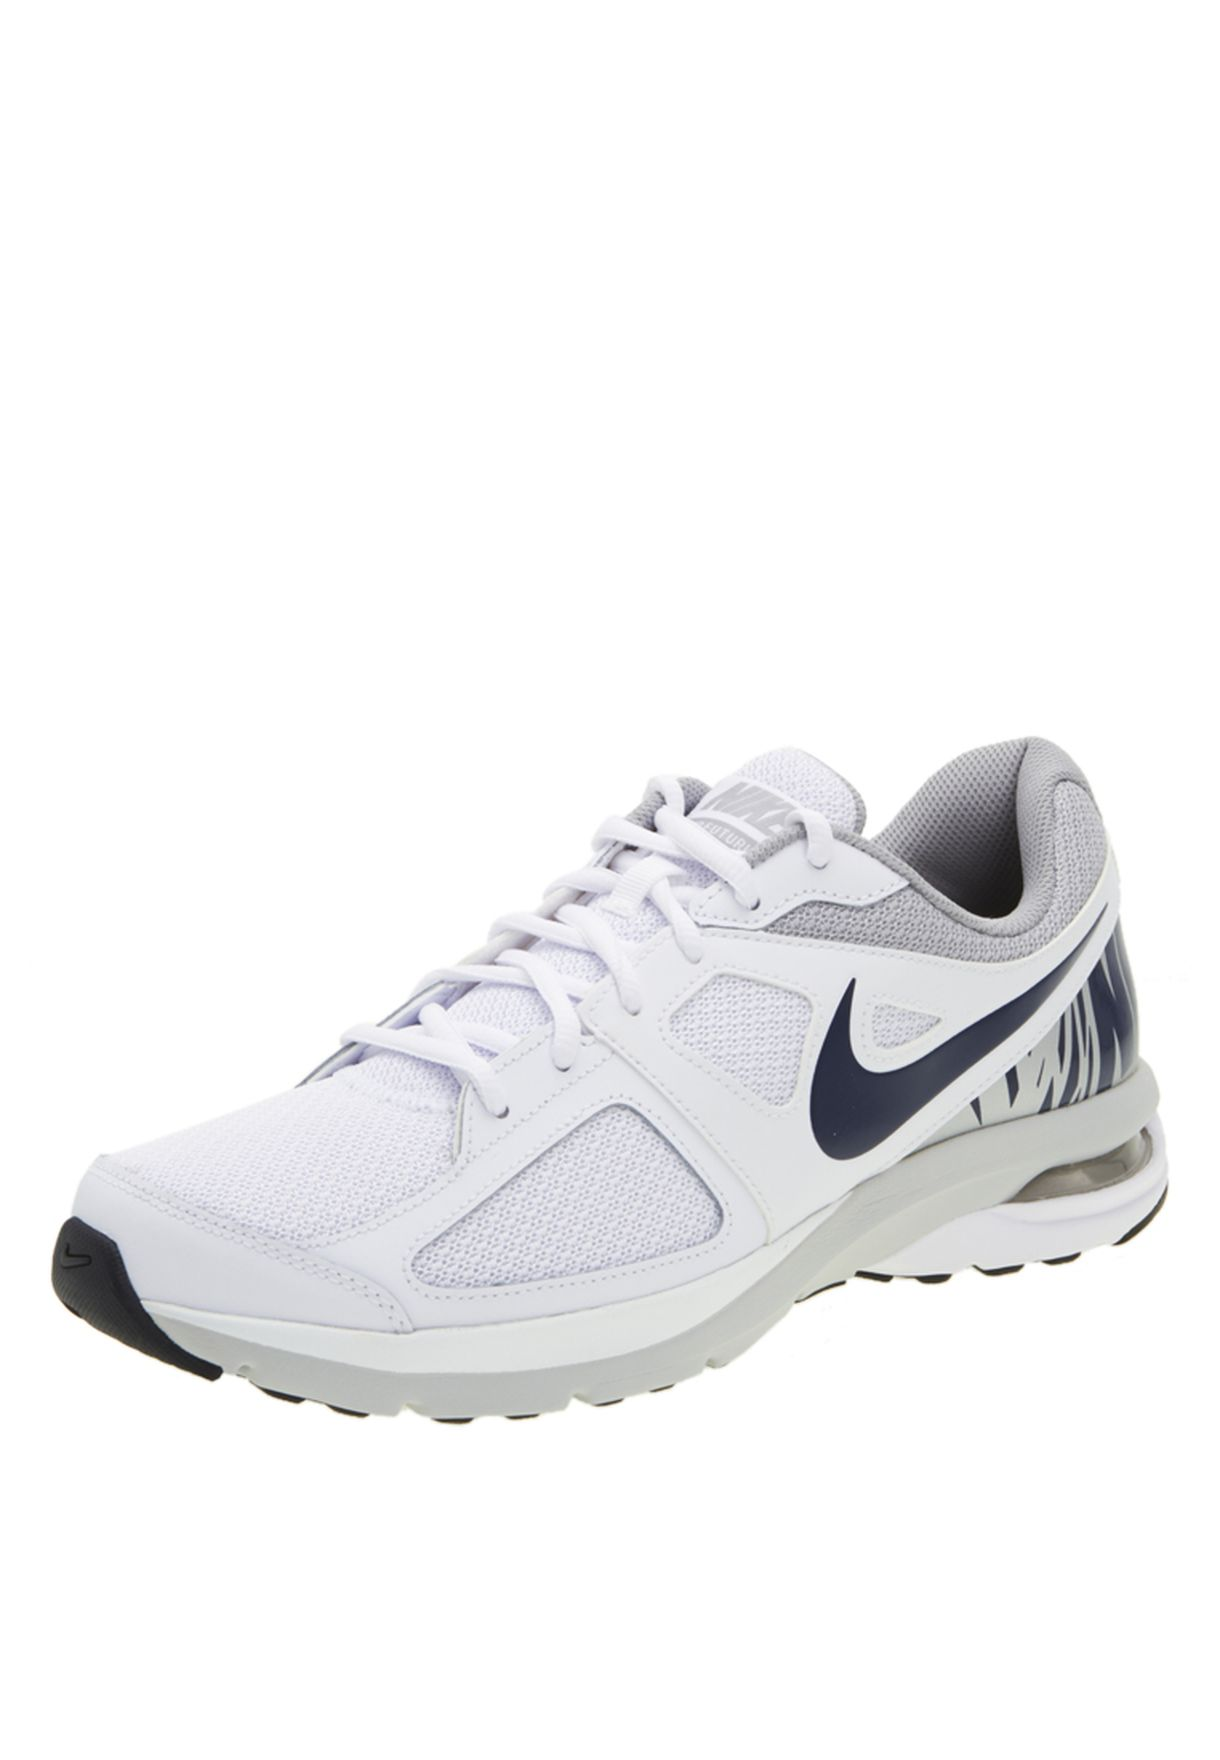 Uae 100 White Men Trainers Shop Air Nike For Futurun 554903 In AZqxYvwf